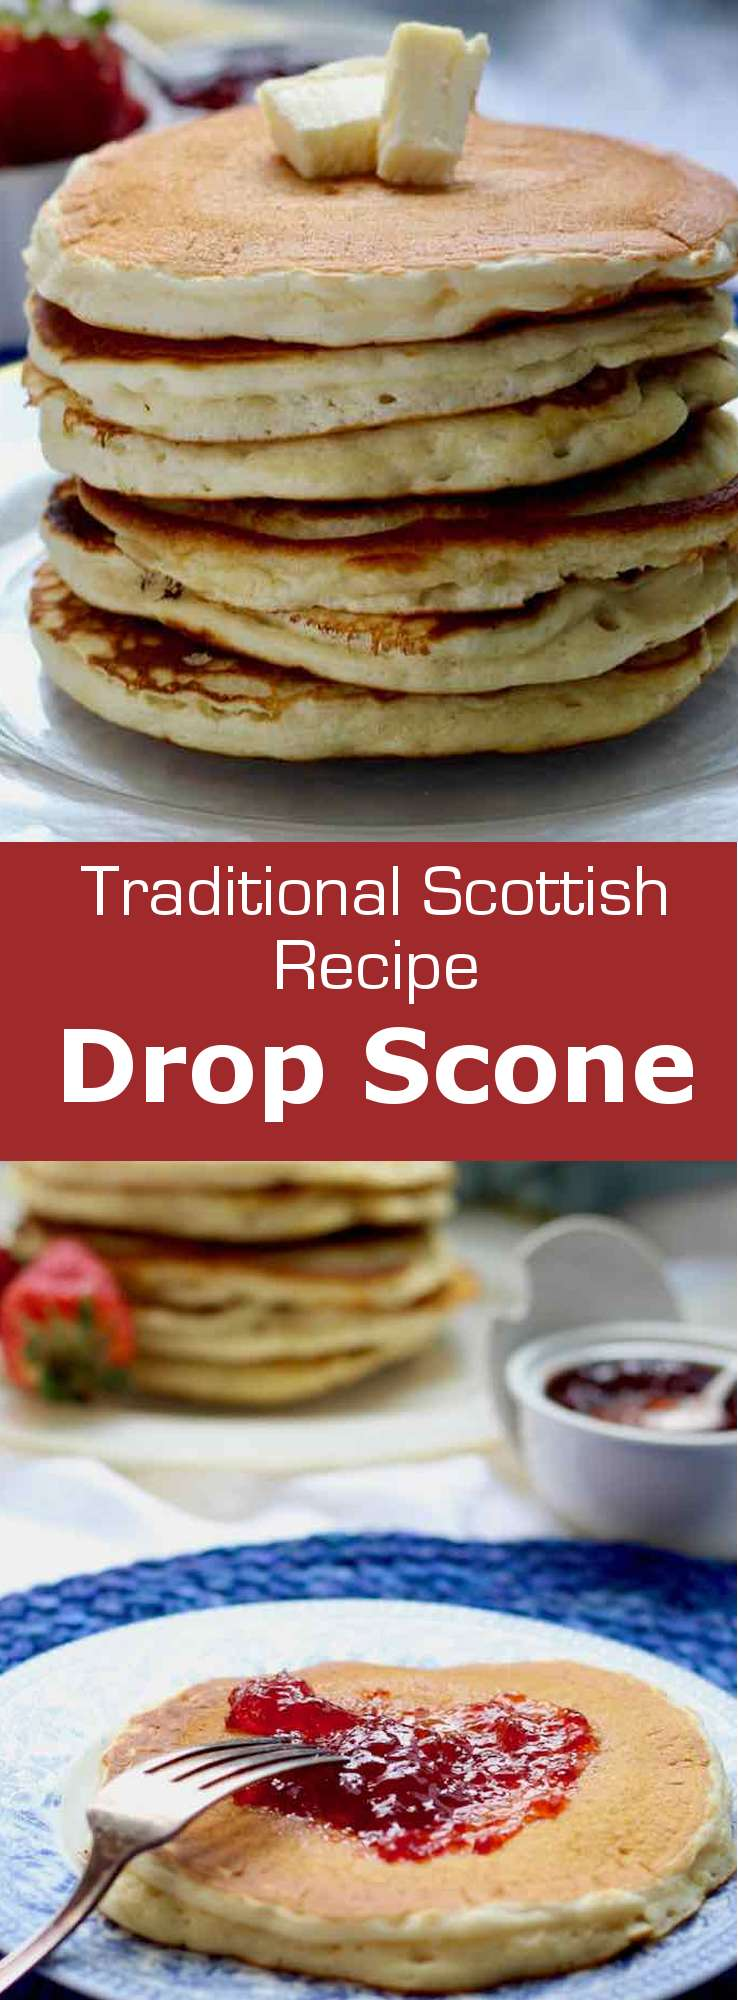 The drop scone is a variation of the traditional Scottish scone. It is baked in the pan and is also known as Scottish pancake. #UnitedKingdom #Scotland #ScottishCuisine #EnglishCuisine #BritishCuisine #ScottishFood #EnglishFood #BritishFood #ScottishRecipe #EnglishRecipe #BritishRecipe #WorldCuisine #196flavors